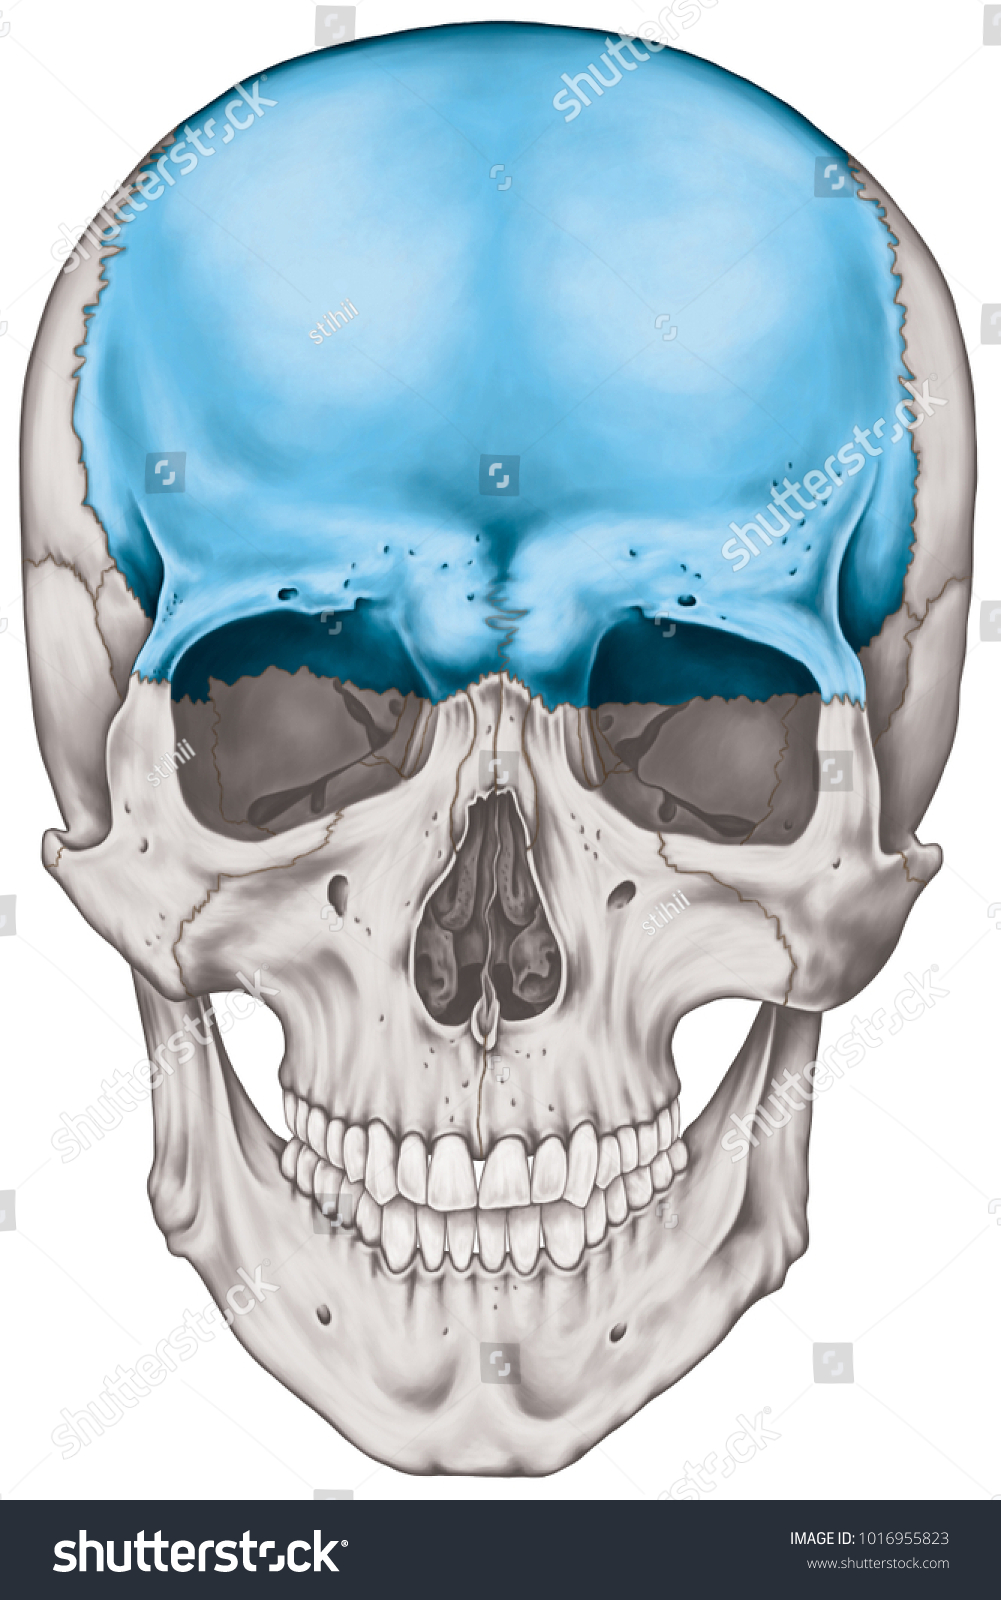 Frontal Bone Cranium Bones Head Skull Stock Illustration 1016955823